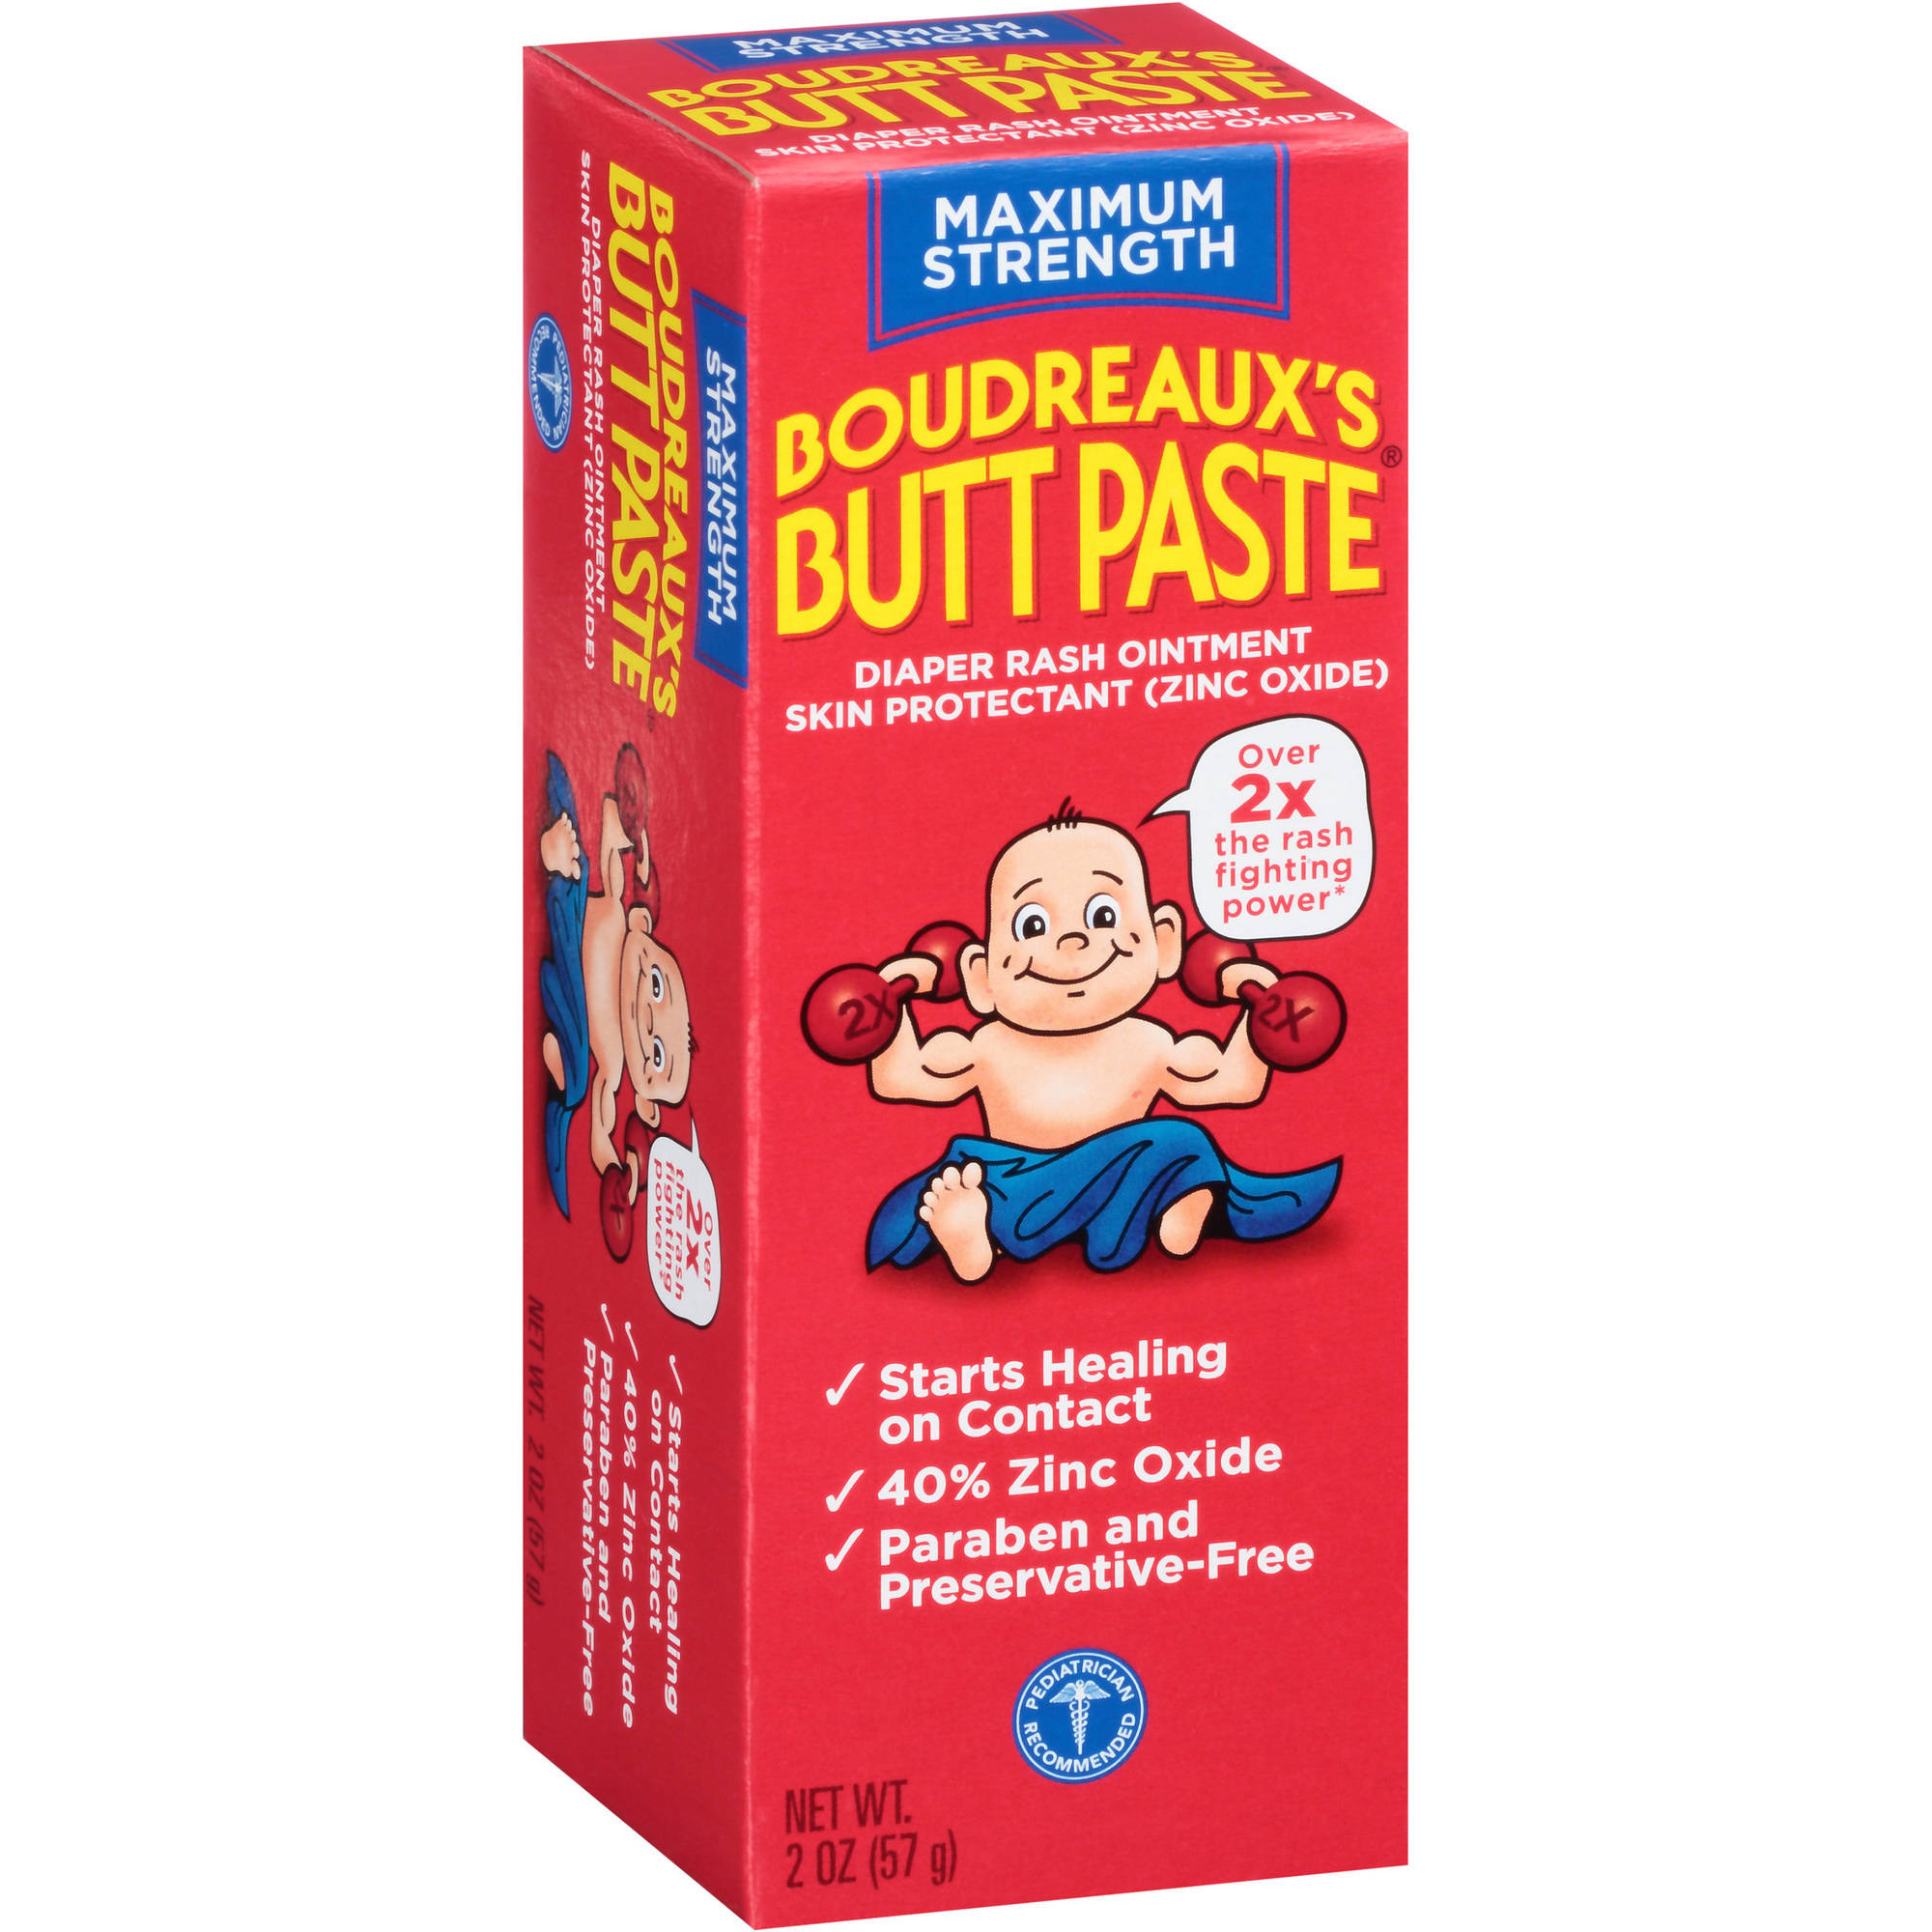 Boudreaux's Butt Paste Diaper Rash Ointment, 2 oz